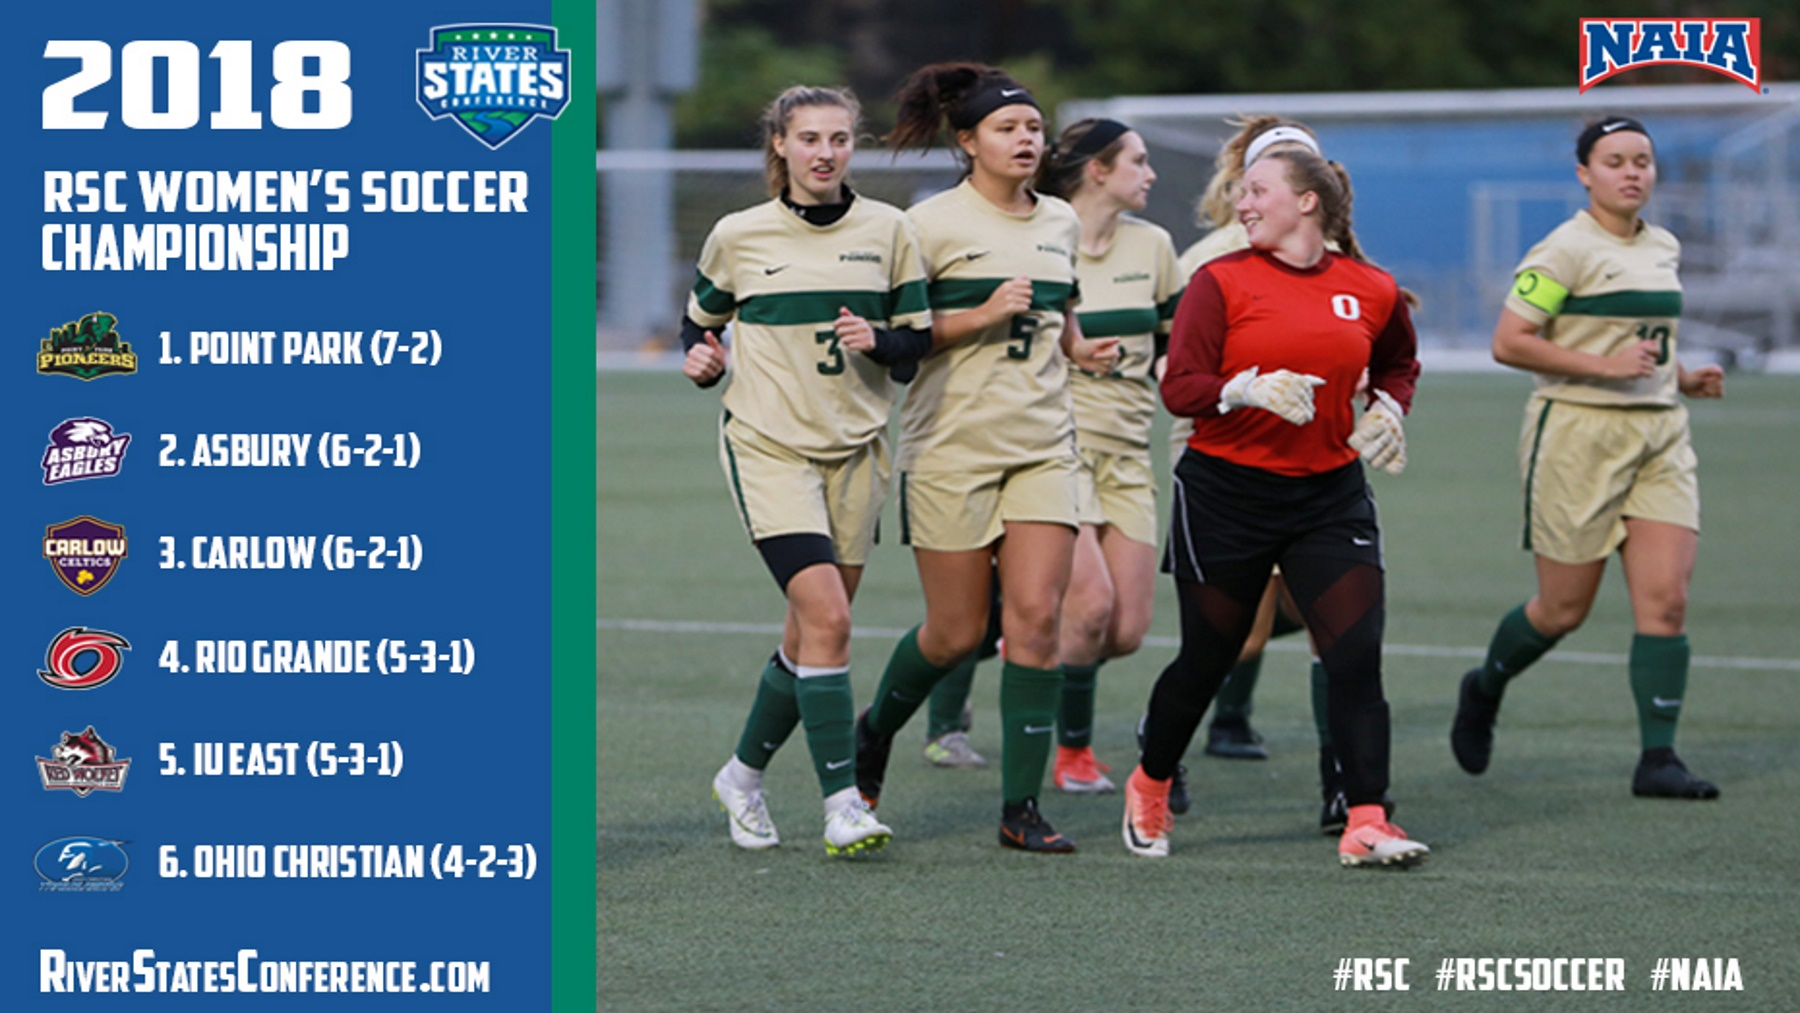 Lady Trailblazers Enter RSC Women's Soccer Championship As #6 Seed image